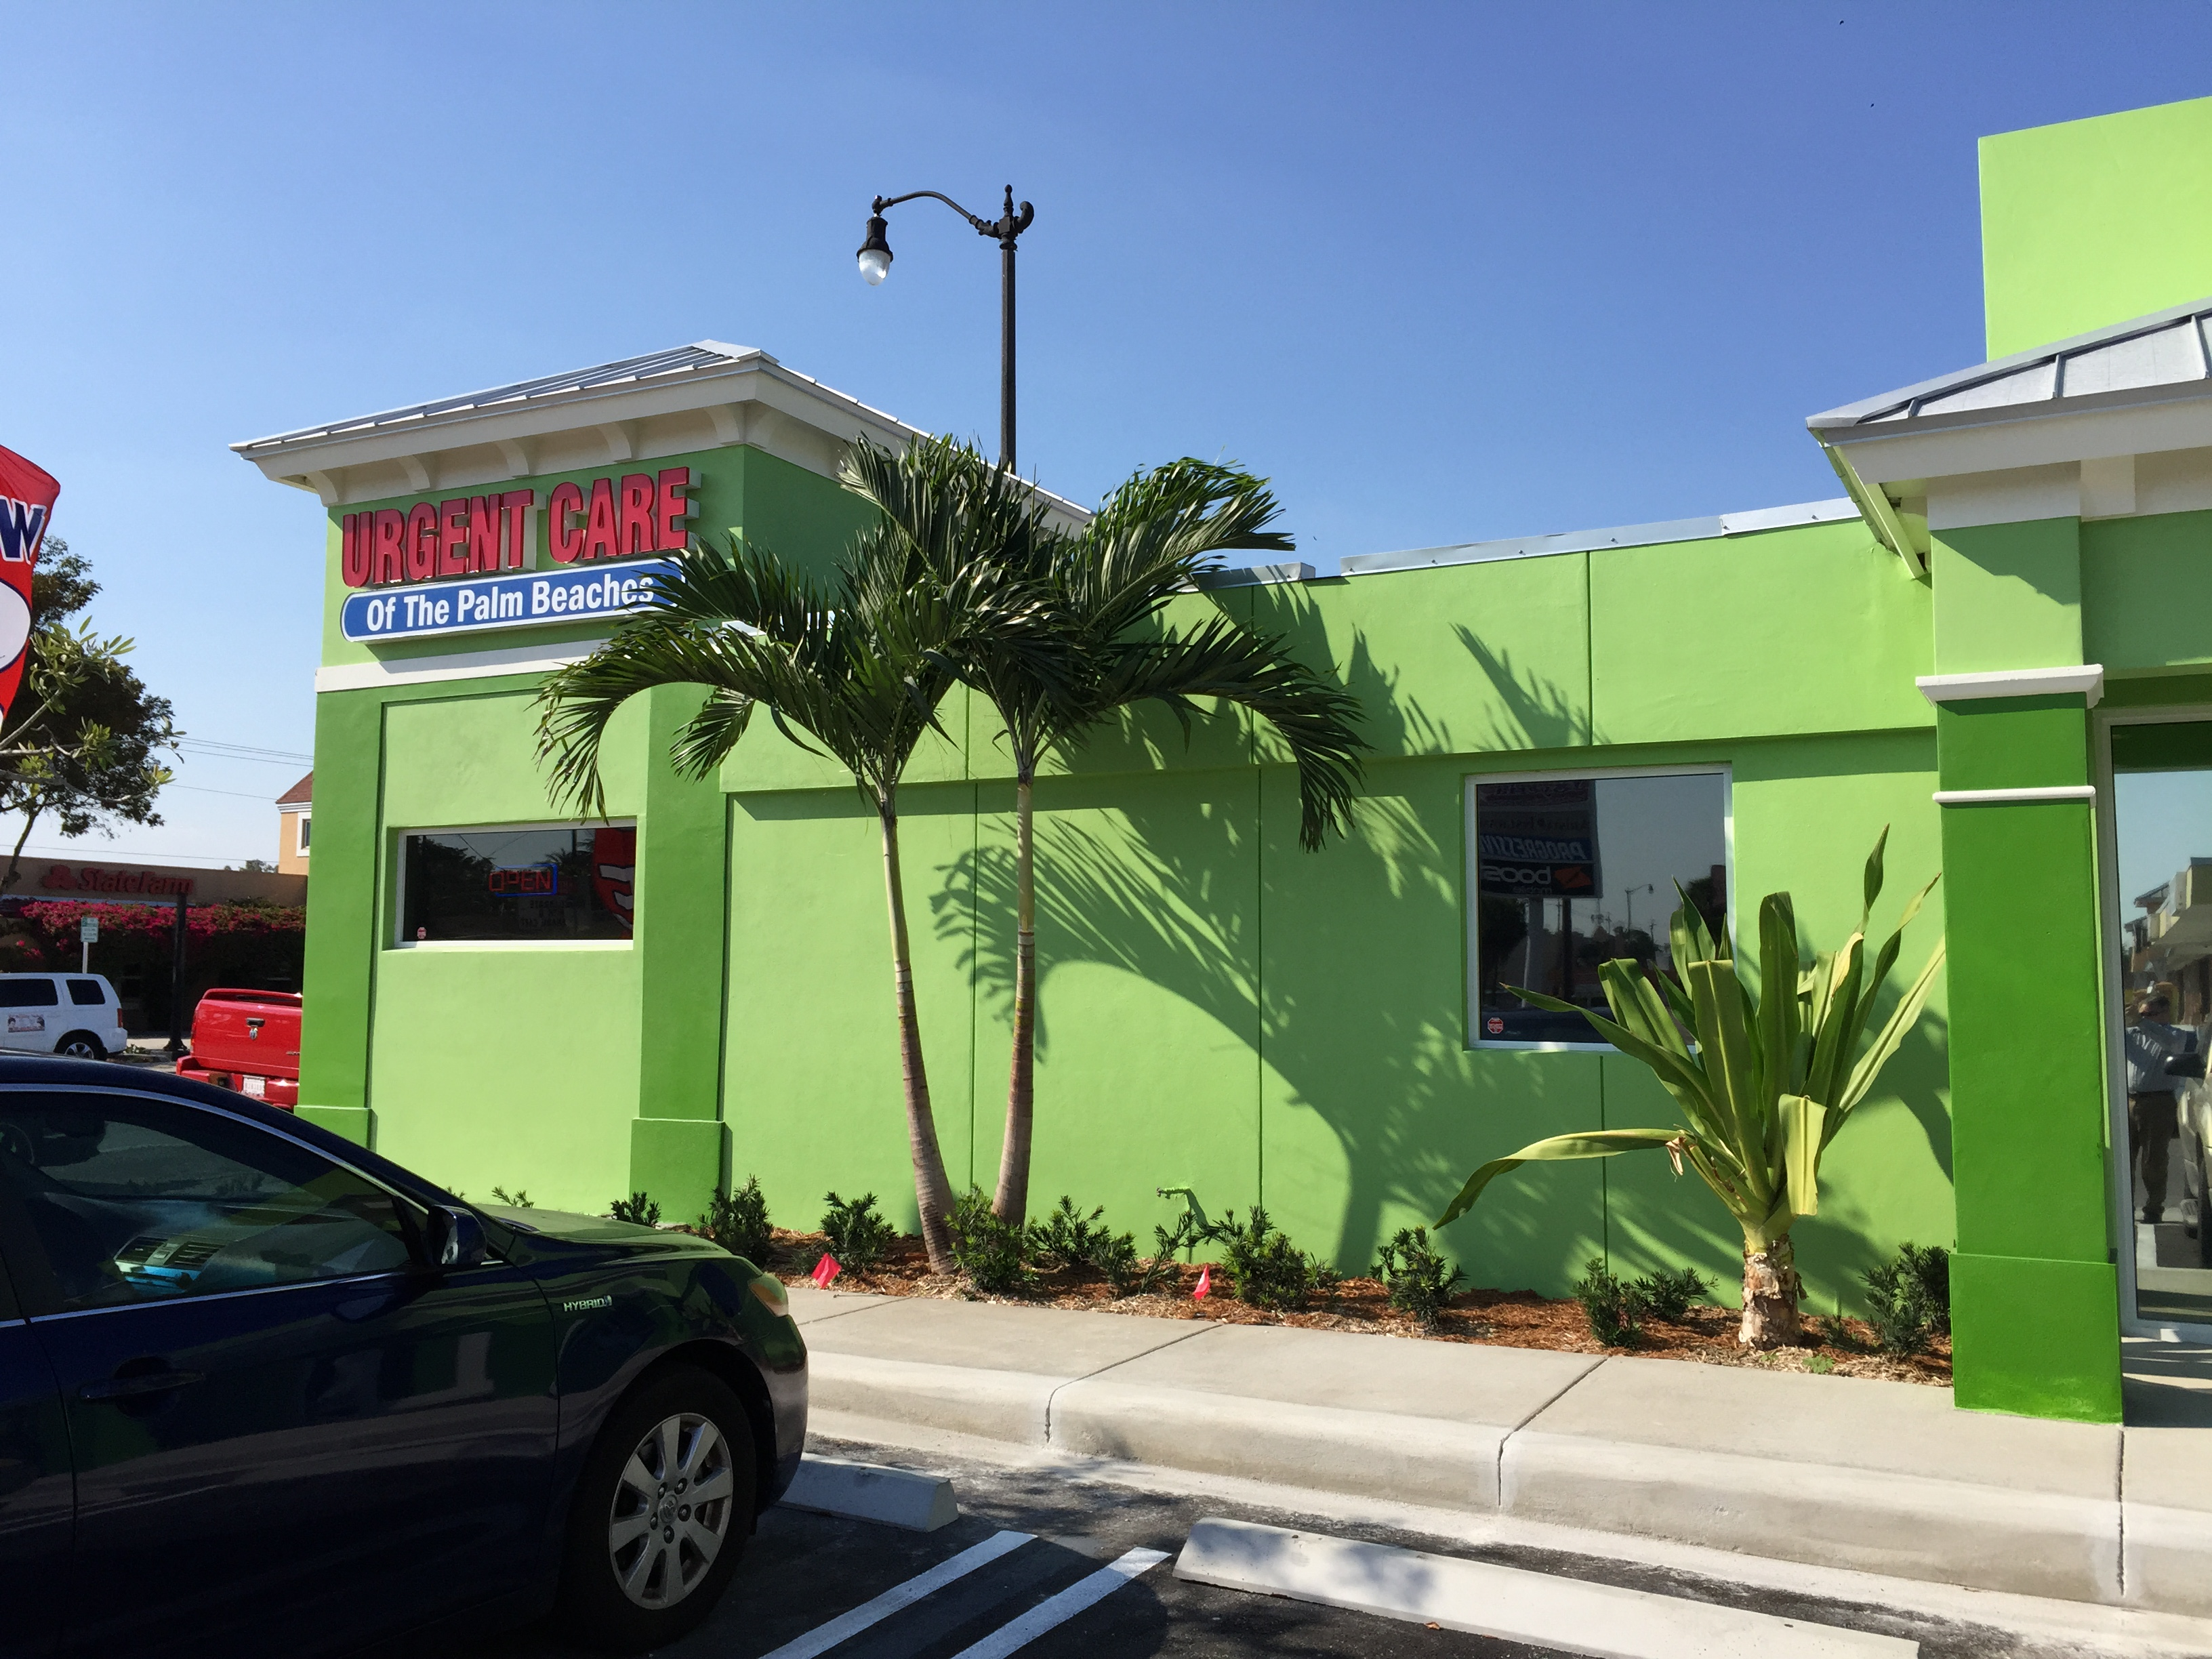 Walk In Clinic West Palm Beach | Urgent Care of the Palm Beaches